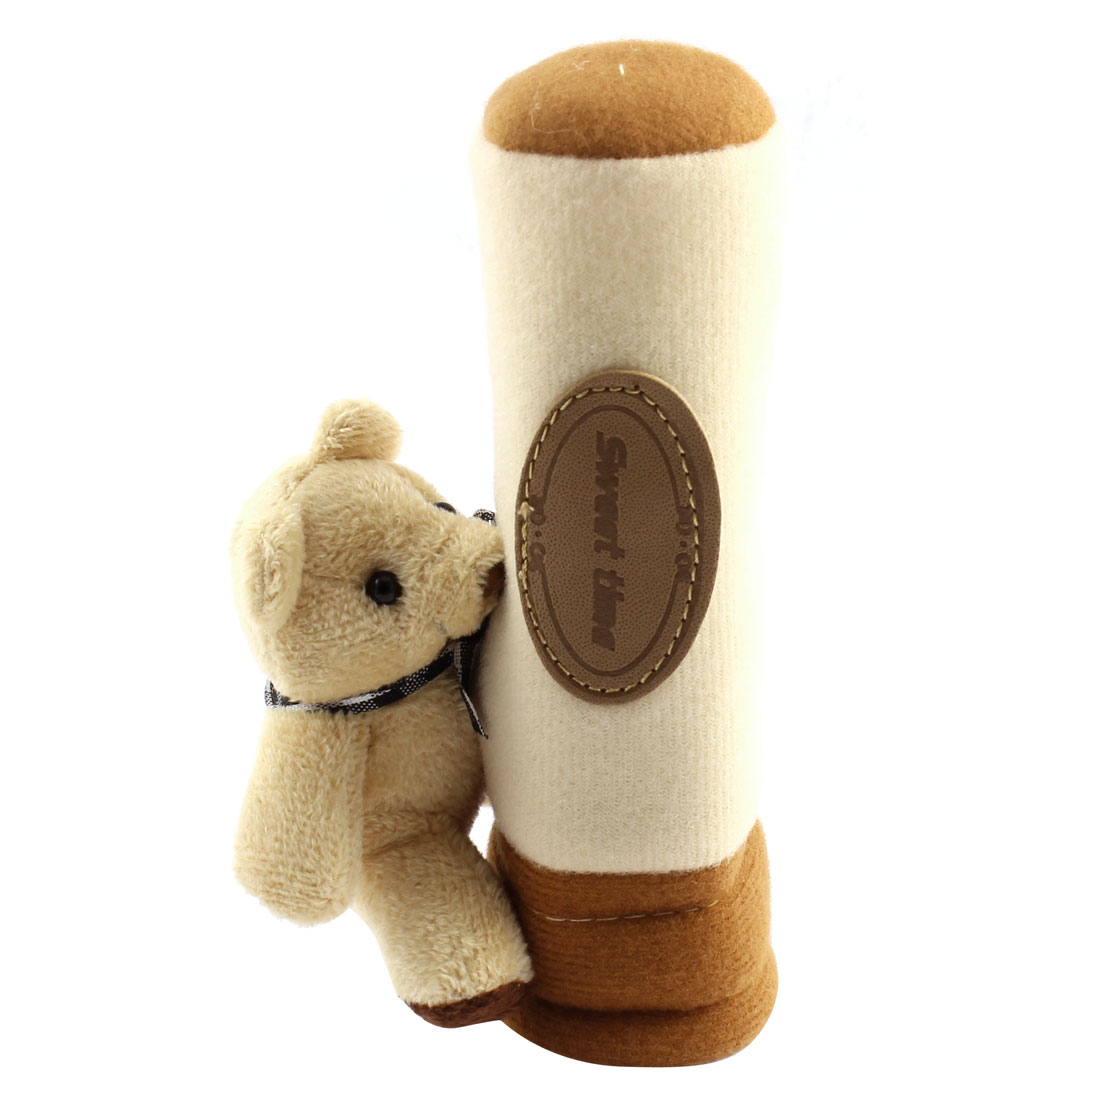 Car Internal Cute Bear Ornament Soft Gear Shift Knob Cover Sleeve Protector Beige